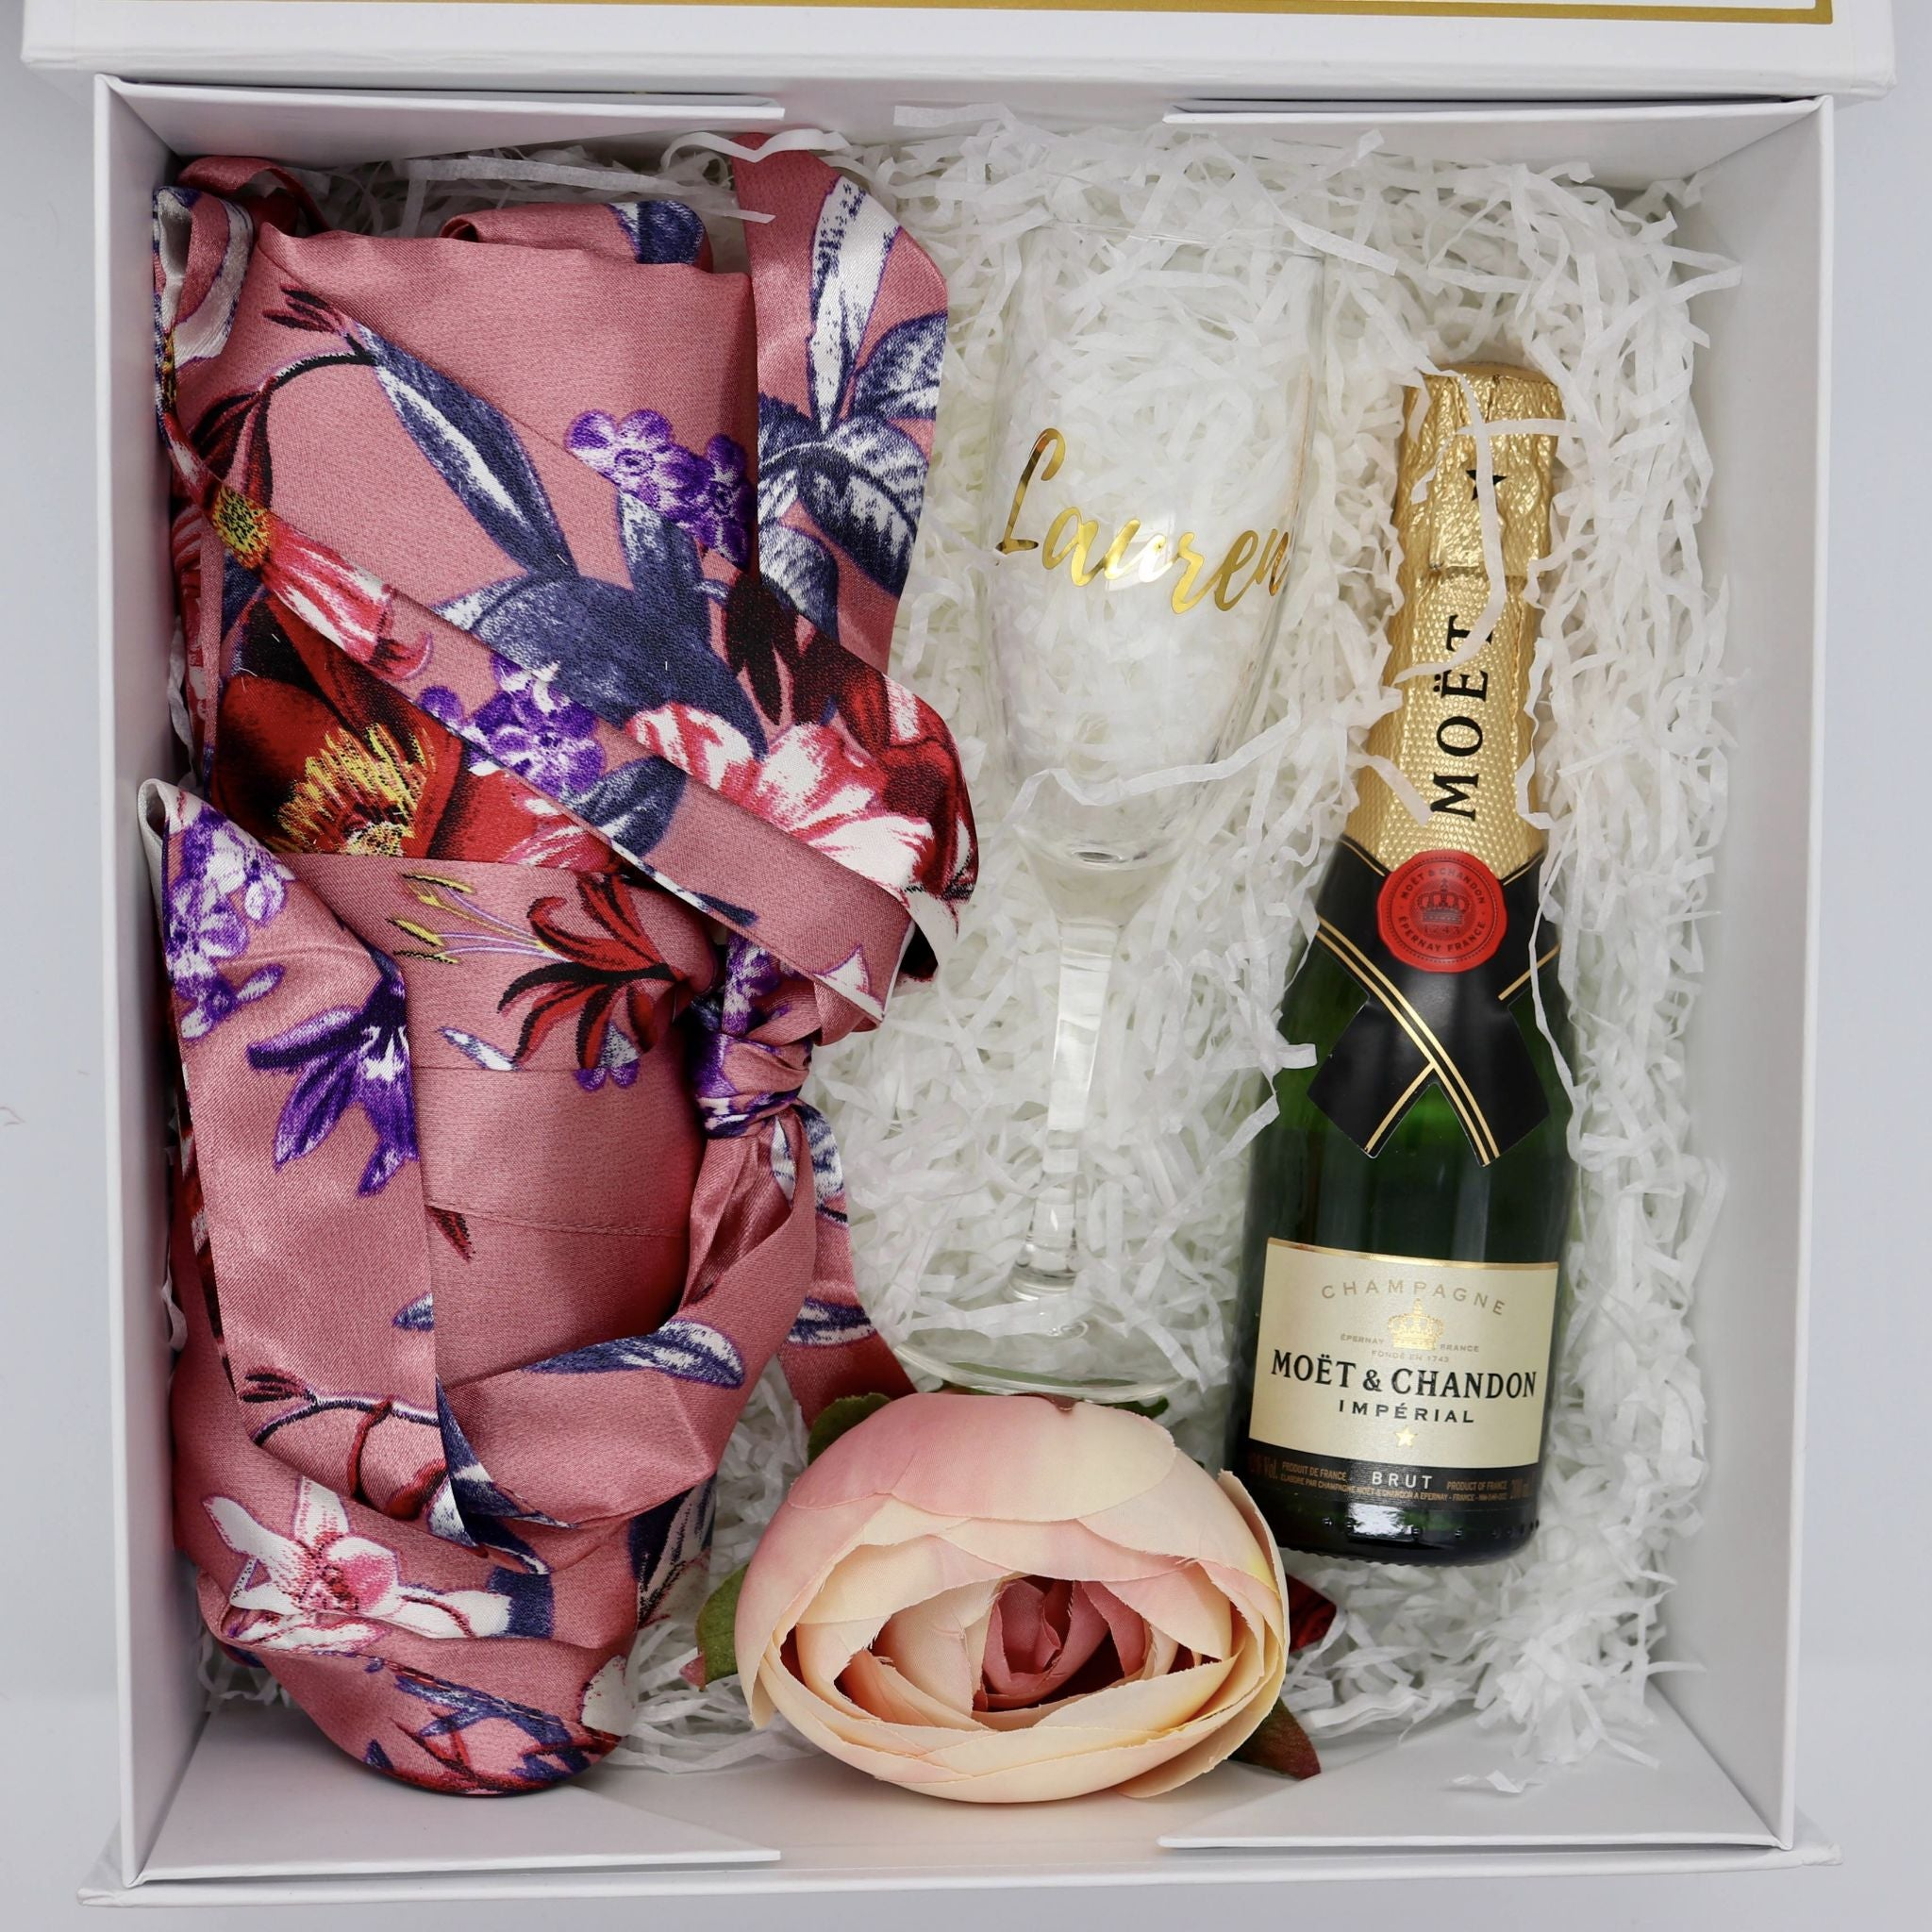 The Marigold Gift Box for Maid of Honour Proposal